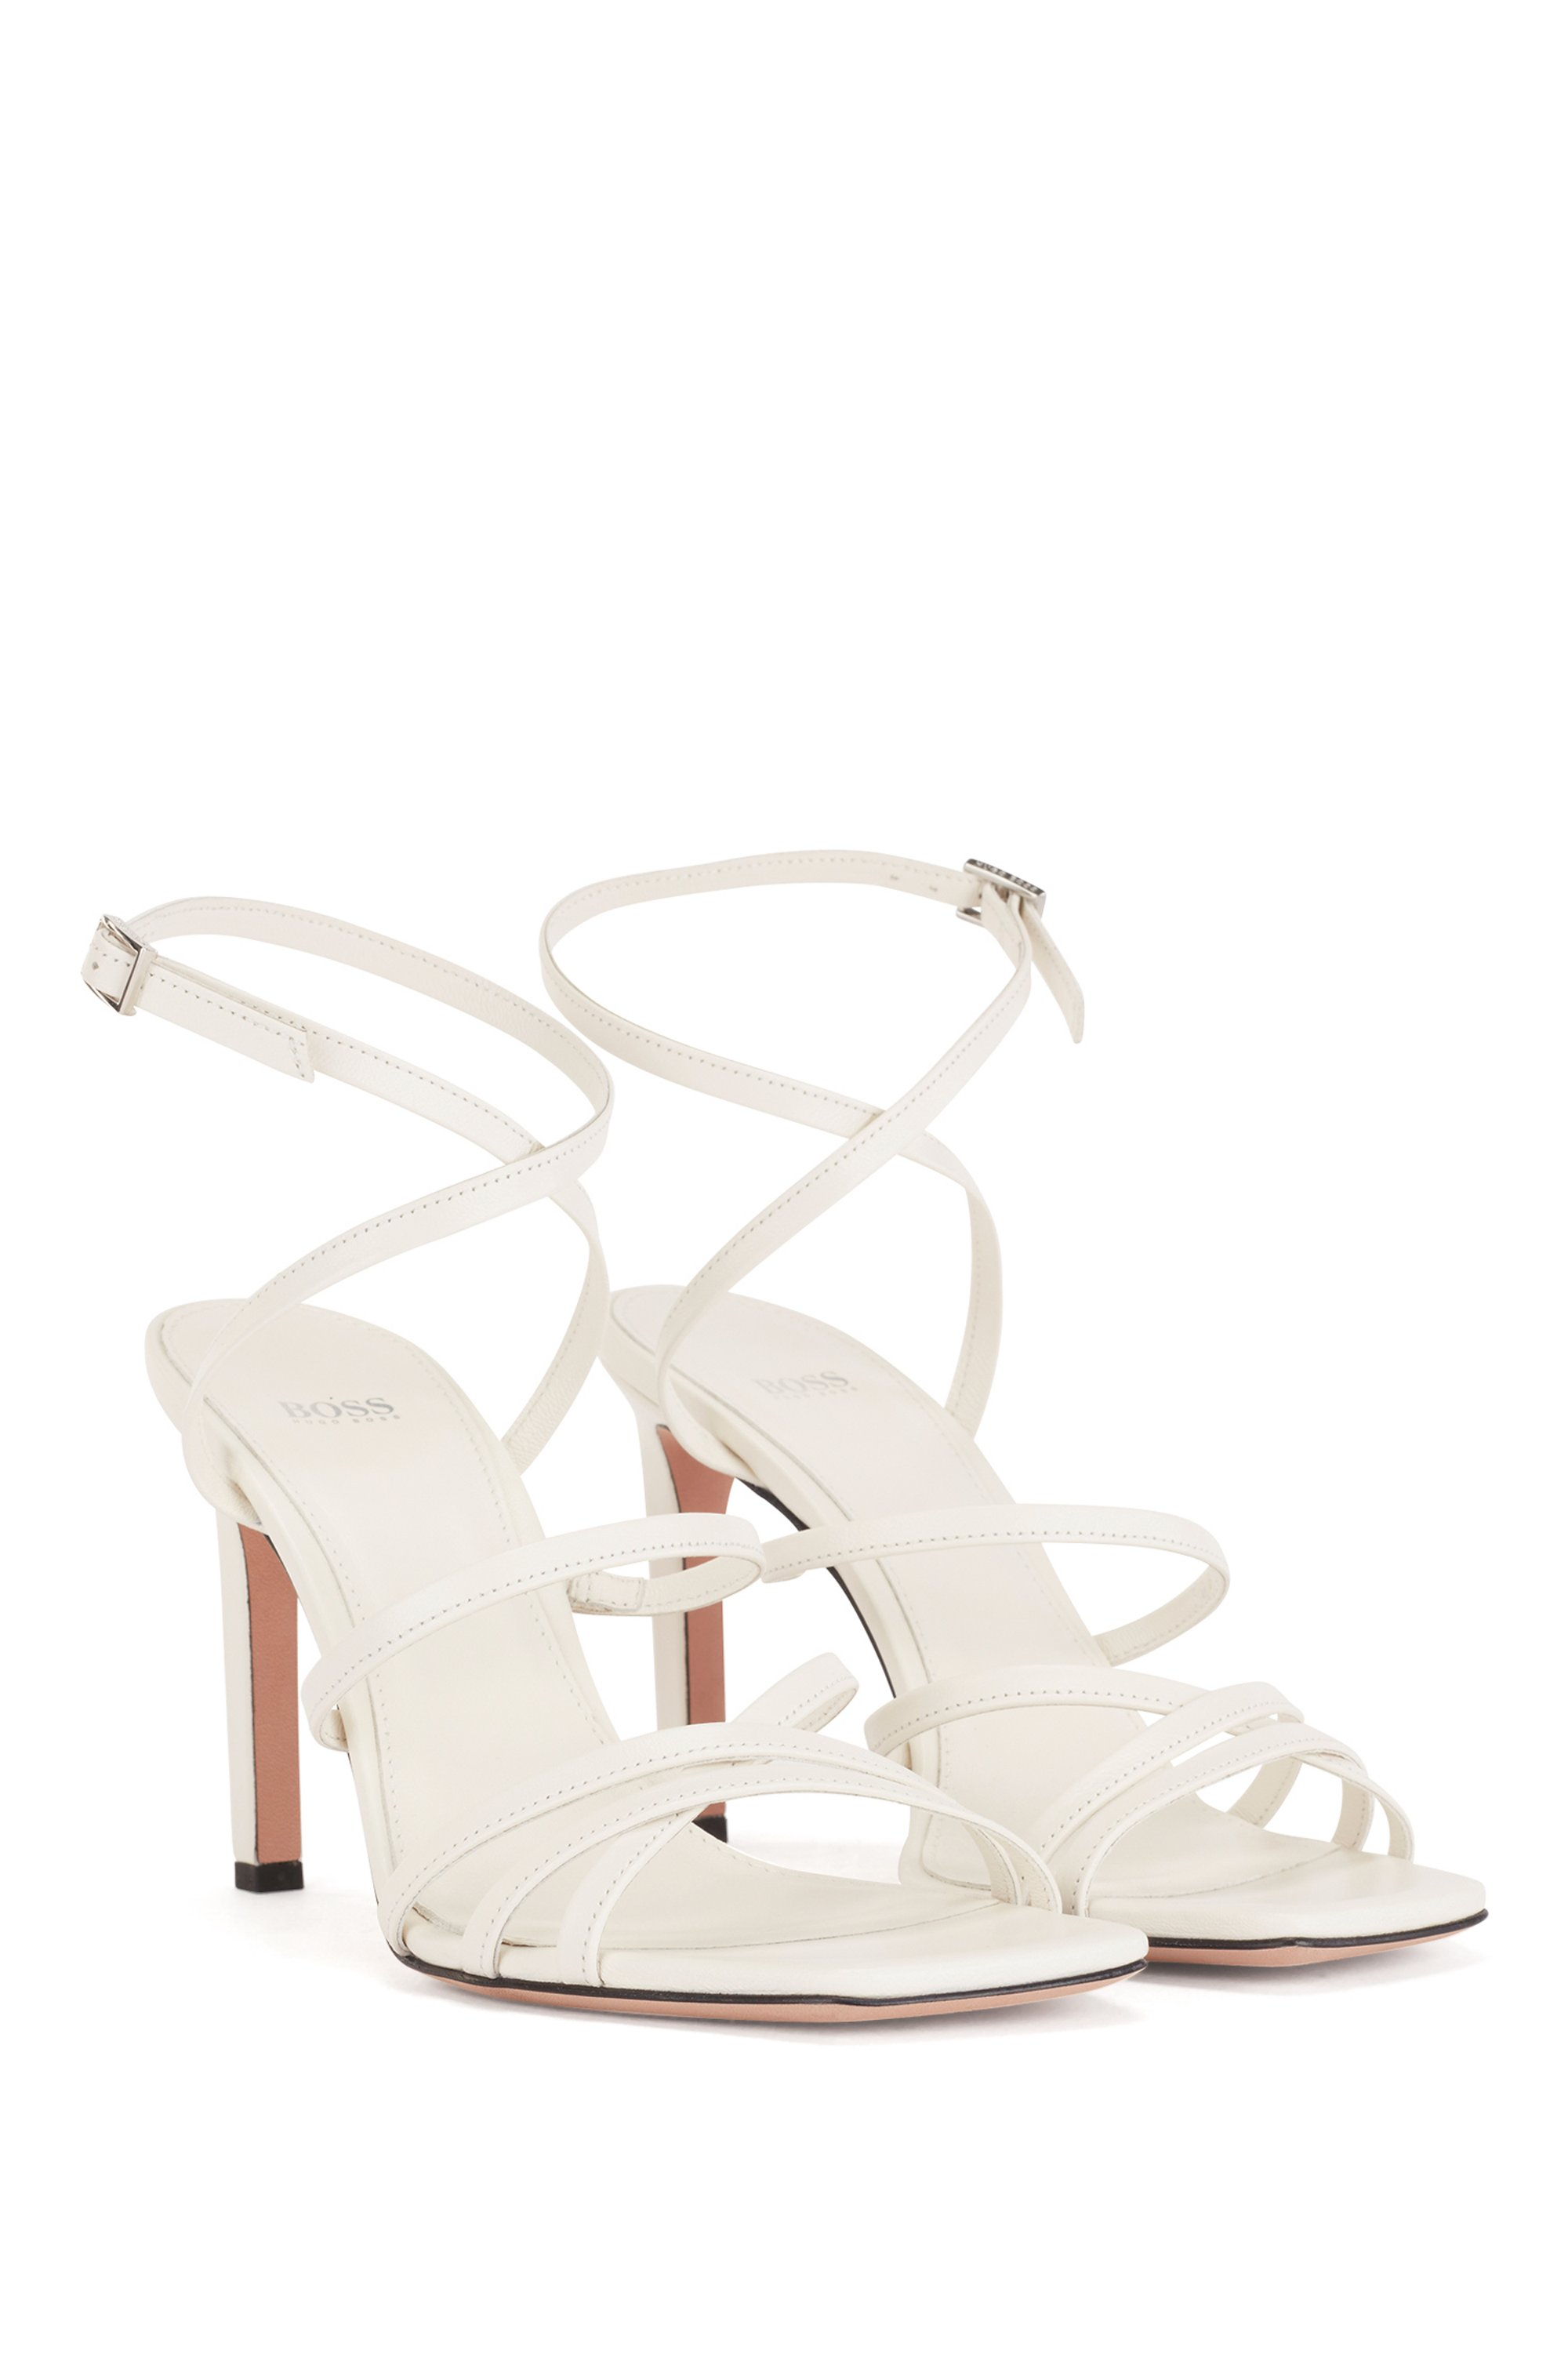 Heeled strappy sandals in Italian leather with squared toe